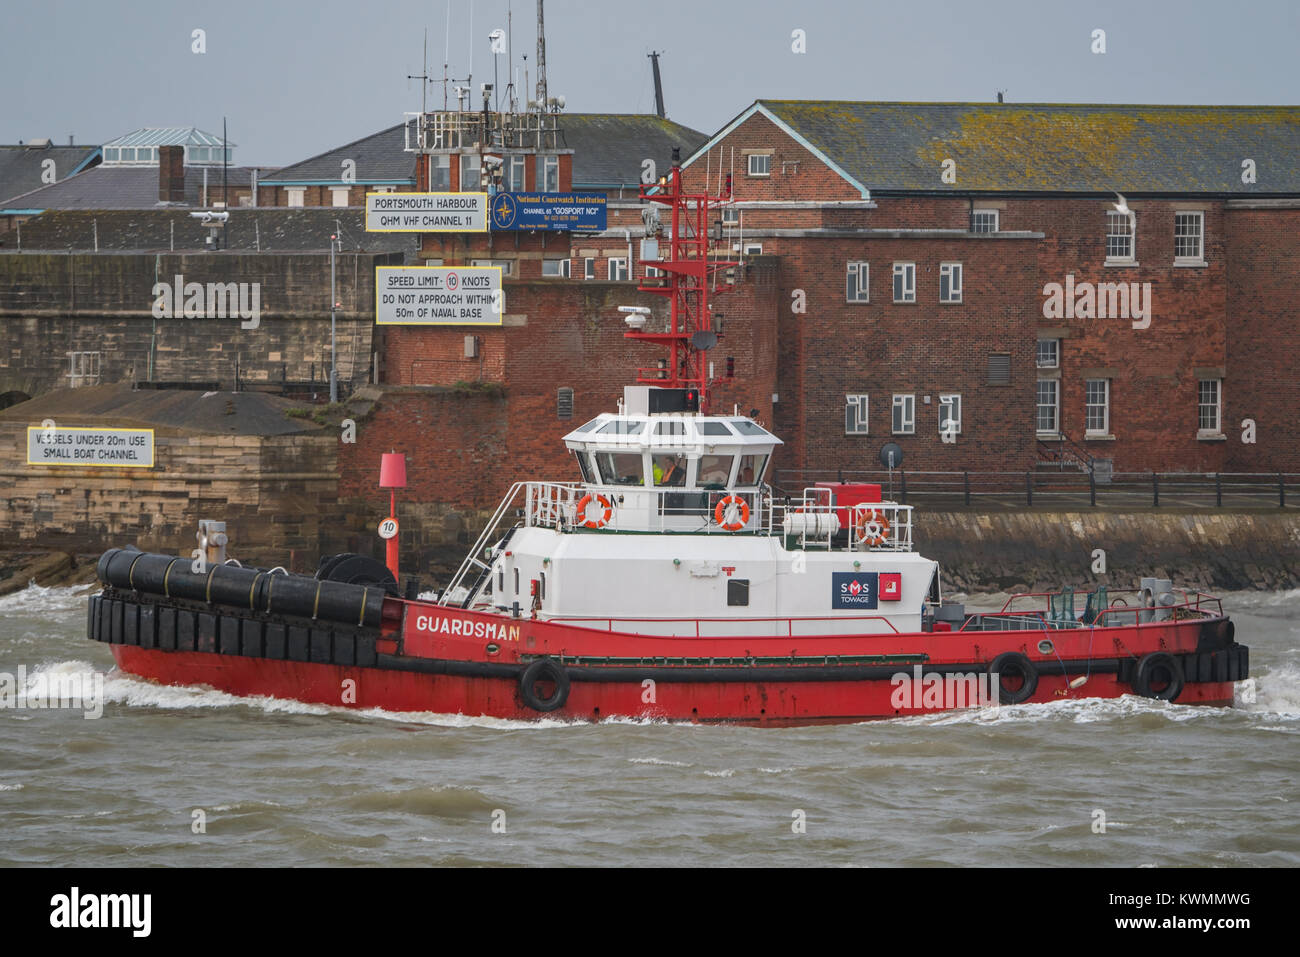 Tugs And Towage Stock Photos & Tugs And Towage Stock Images